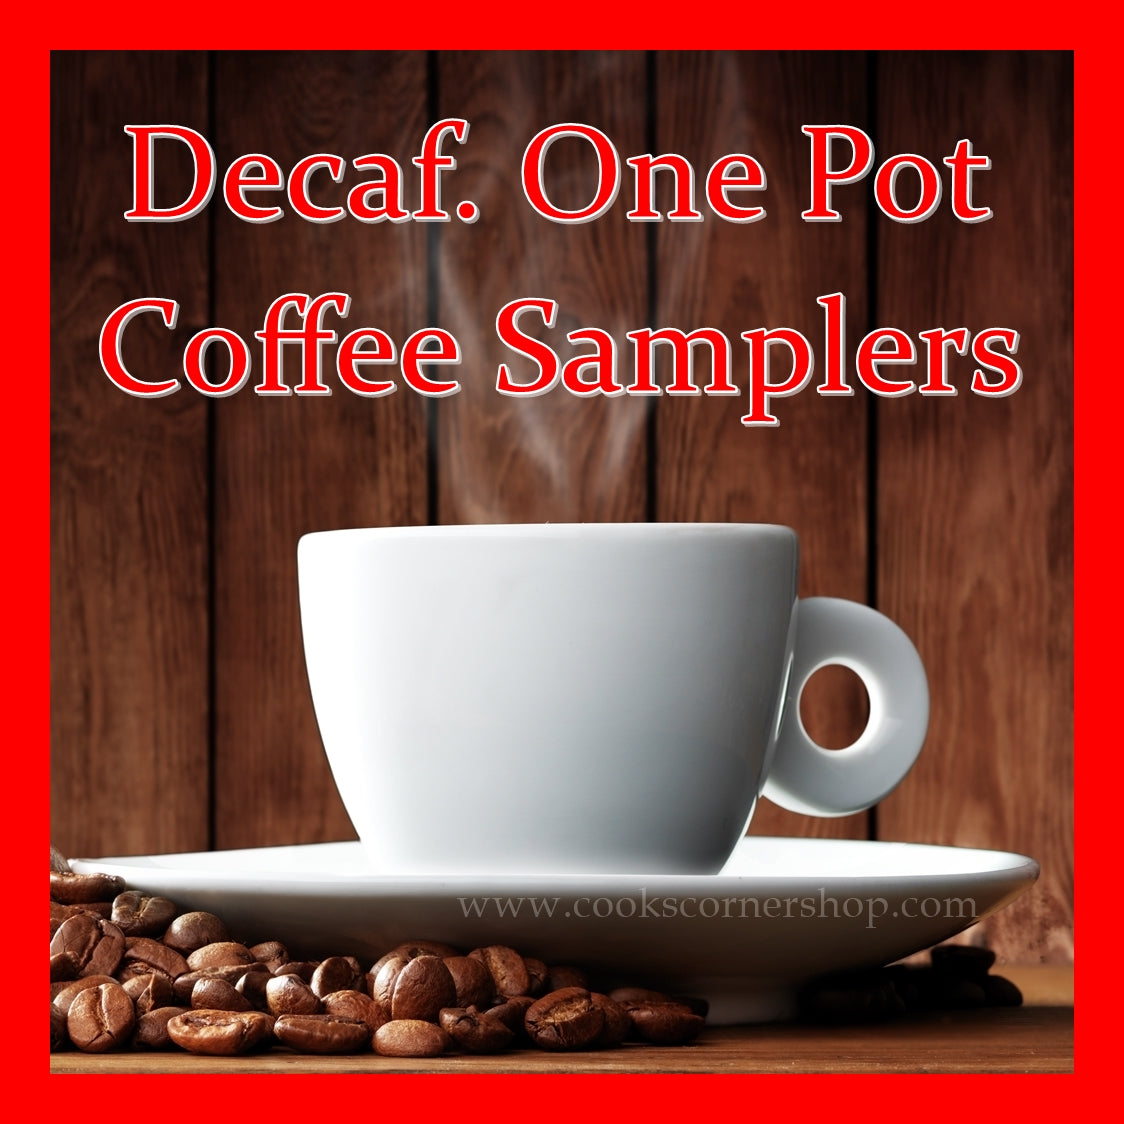 Decaf One Pot Coffee Samplers